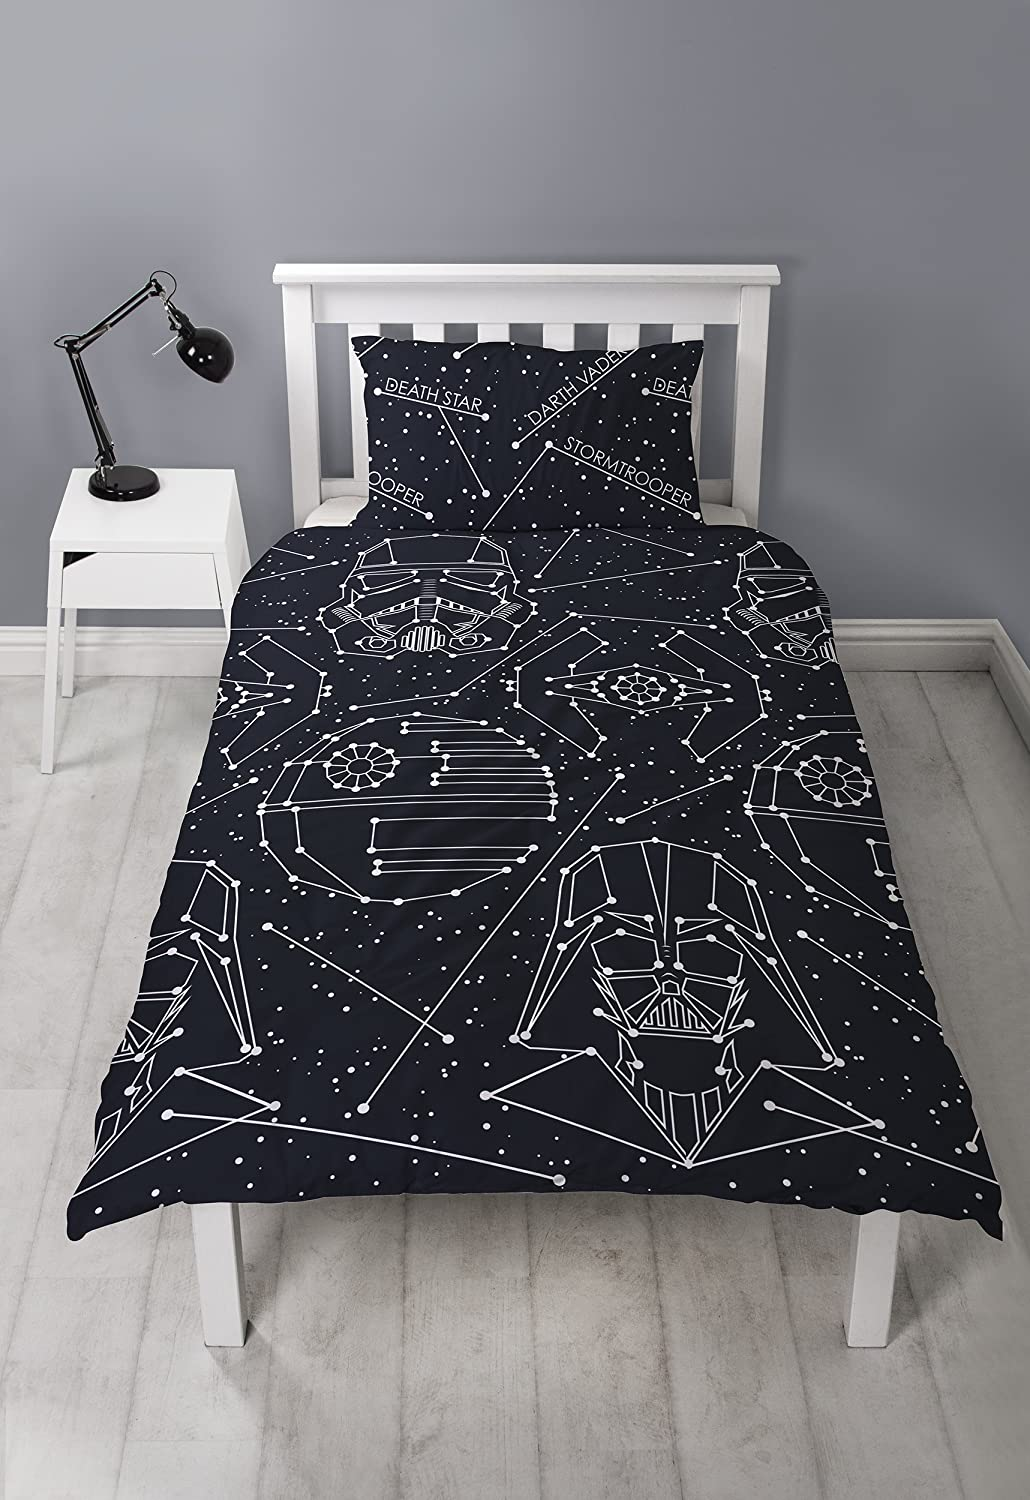 Star Wars Duvet Cover, Black, 200 x 130 cm Character World DSWSTEDS002UK1